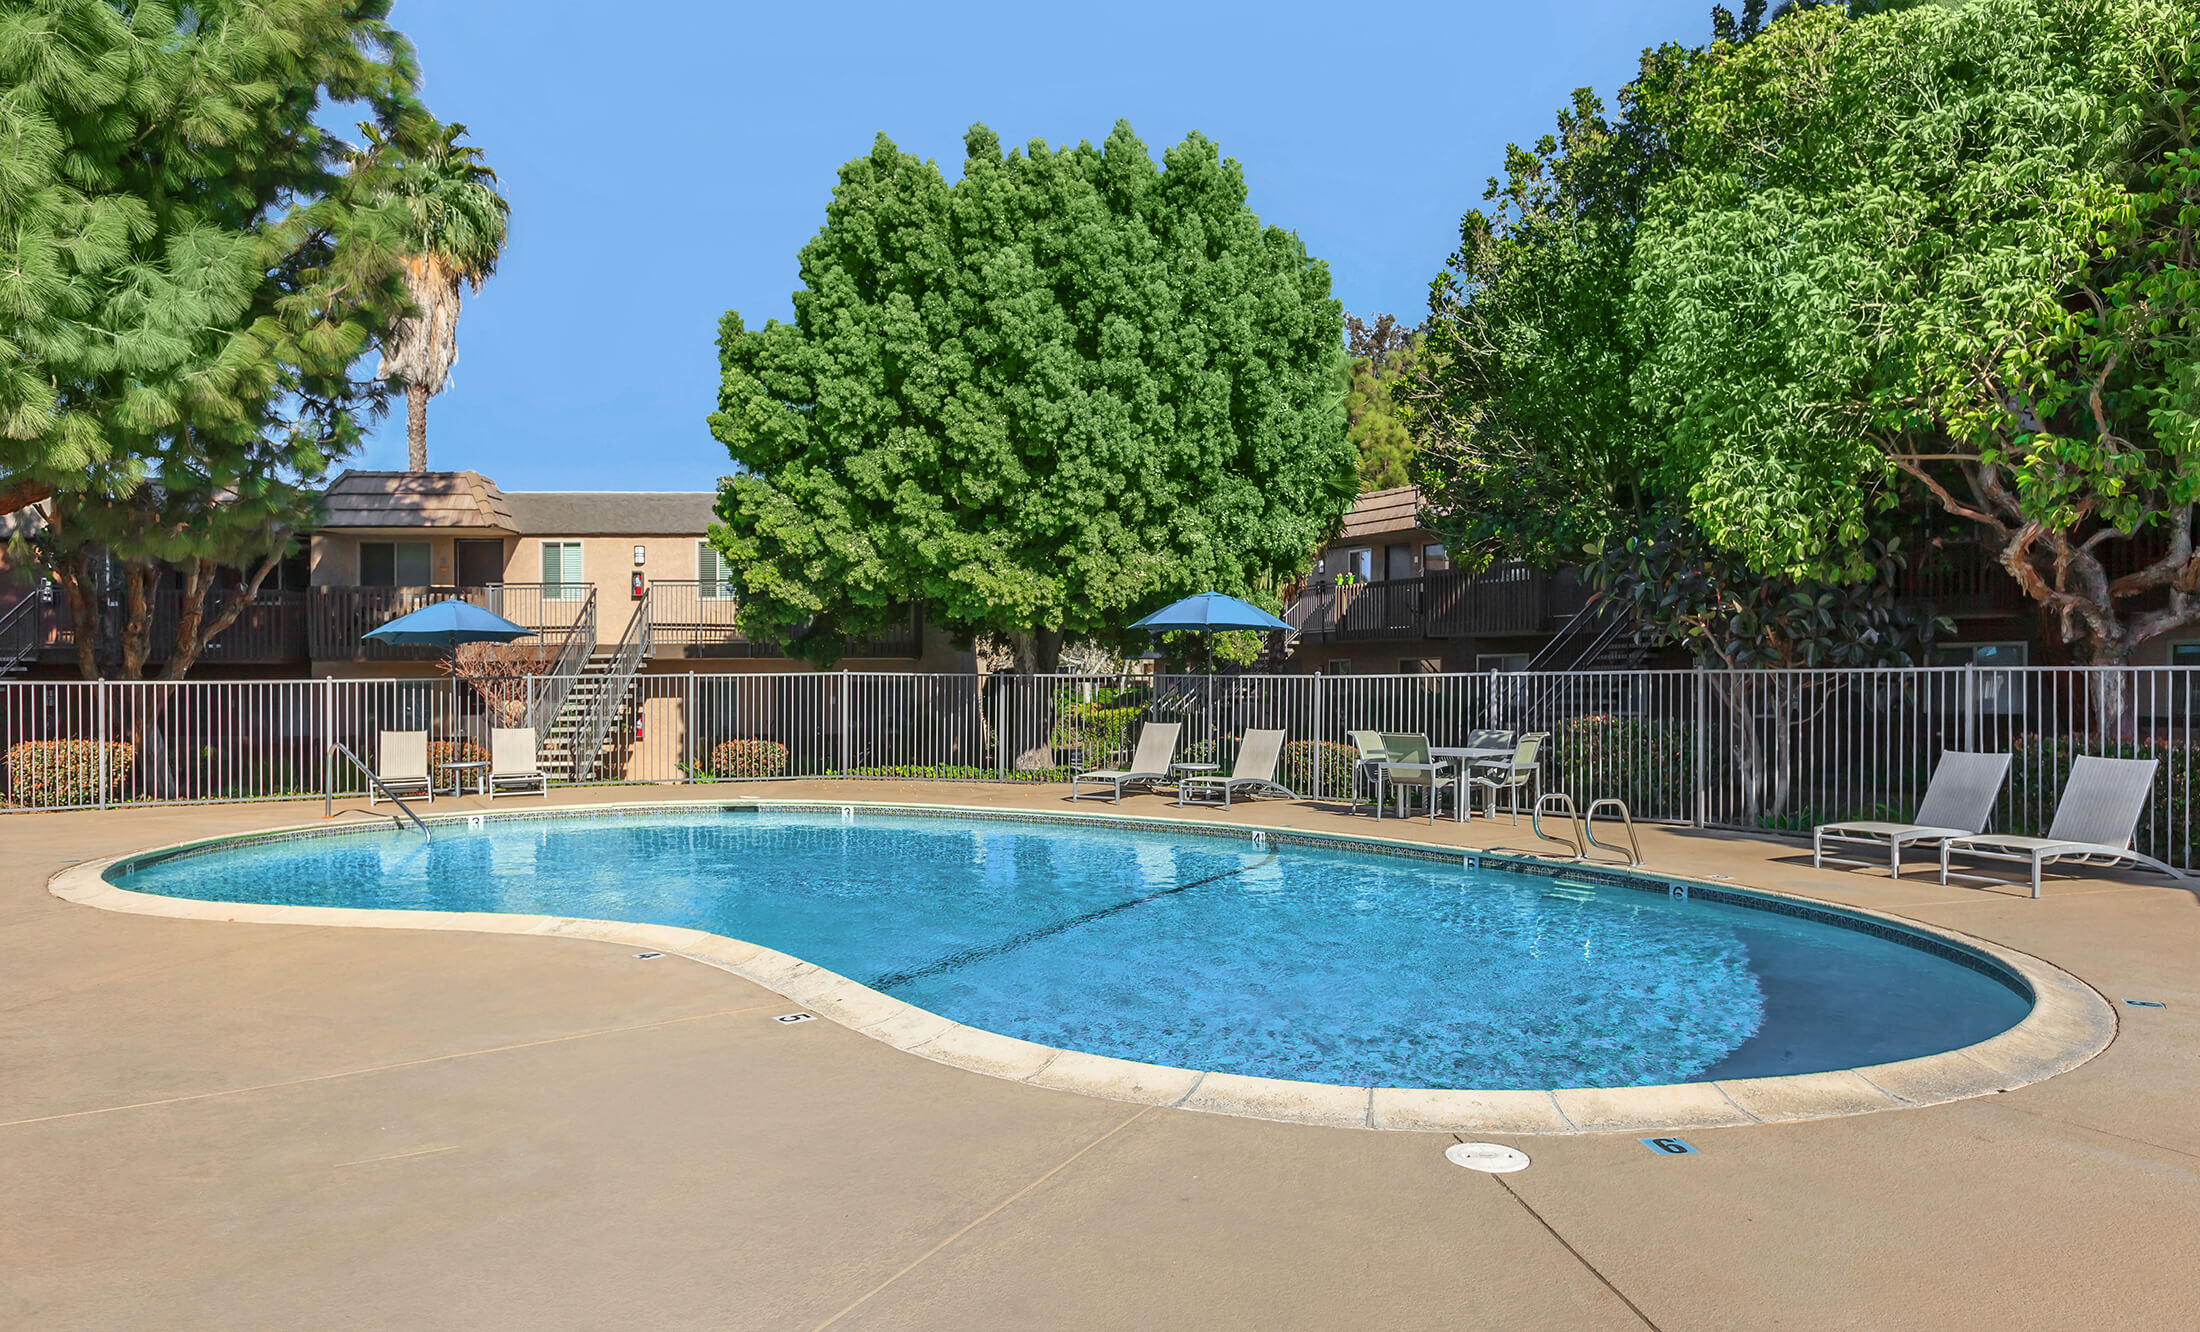 The bluffs at carlsbad apartment homes in carlsbad ca - 1 bedroom apartments in carlsbad ca ...